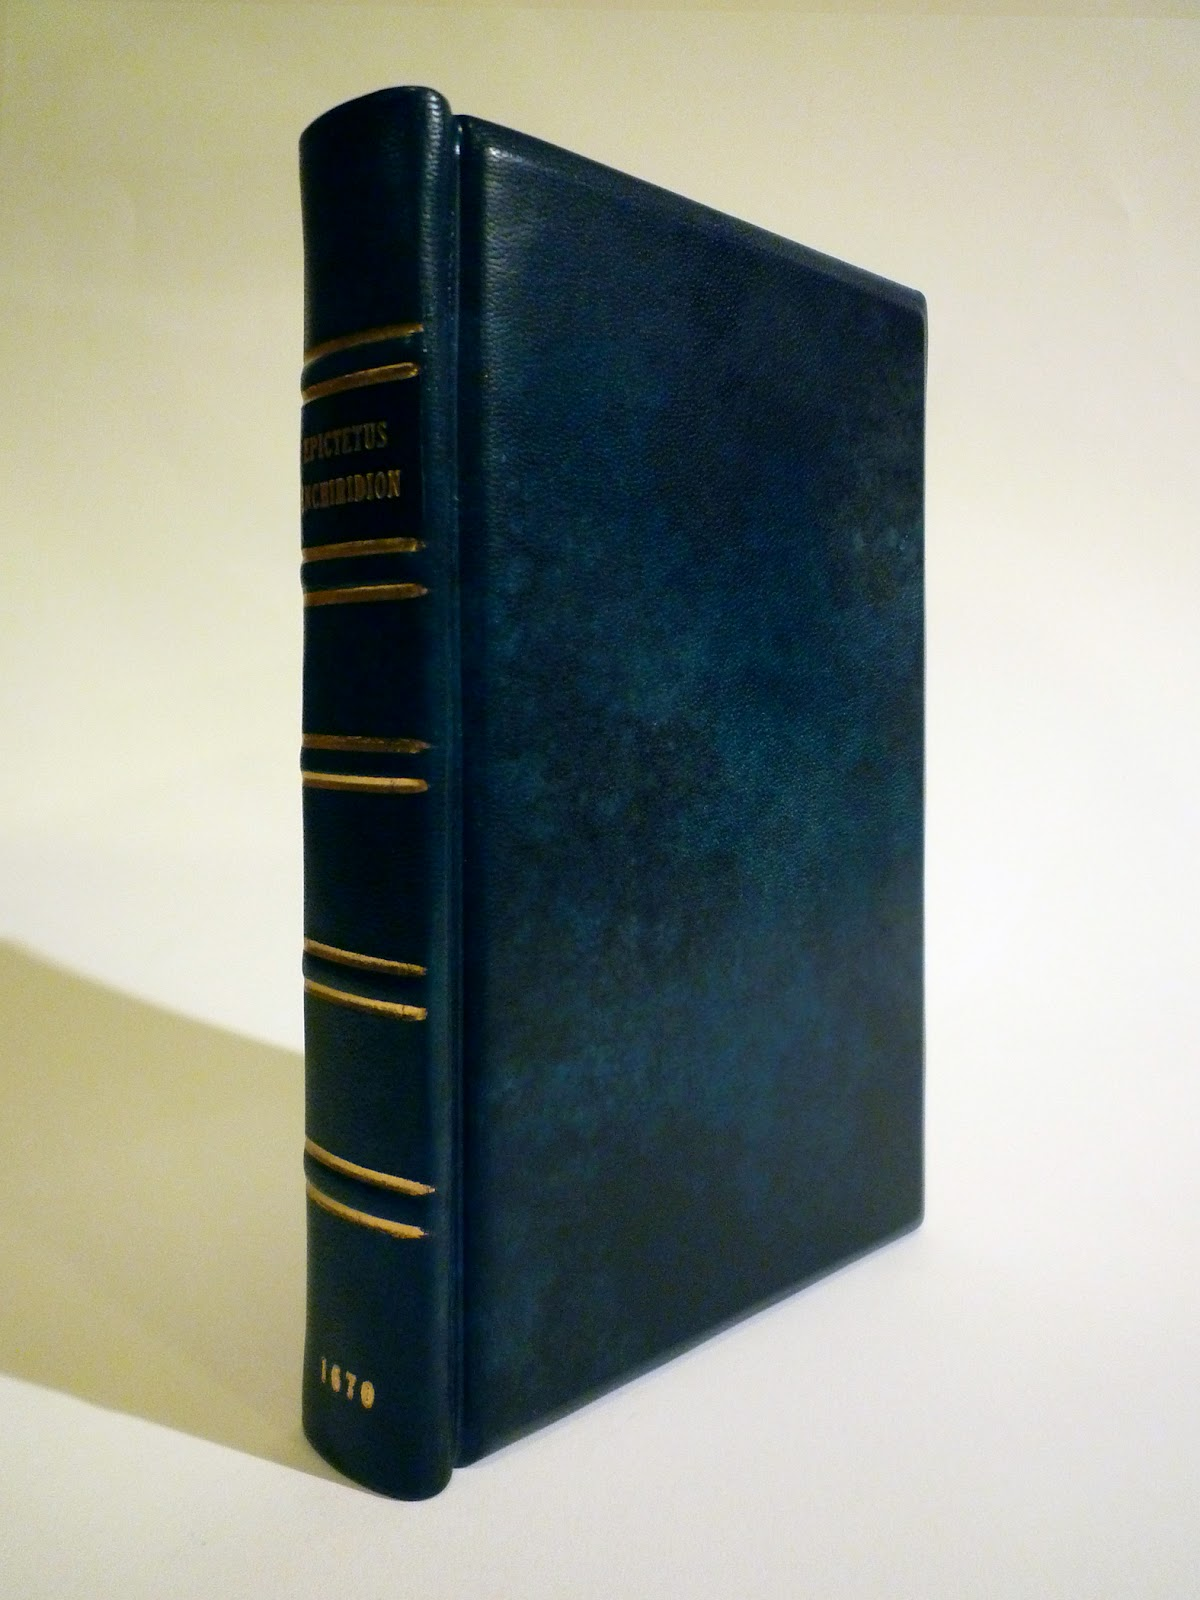 an analysis of the philosophical work the enchiridion by epictetus In writing this i draw, in particular, on the work of epictetus, along with the  this  teaching is summed up in epictetus's the enchiridion:  in the intricacies of  analytical argumentation to deem anything to be uncontroversial.